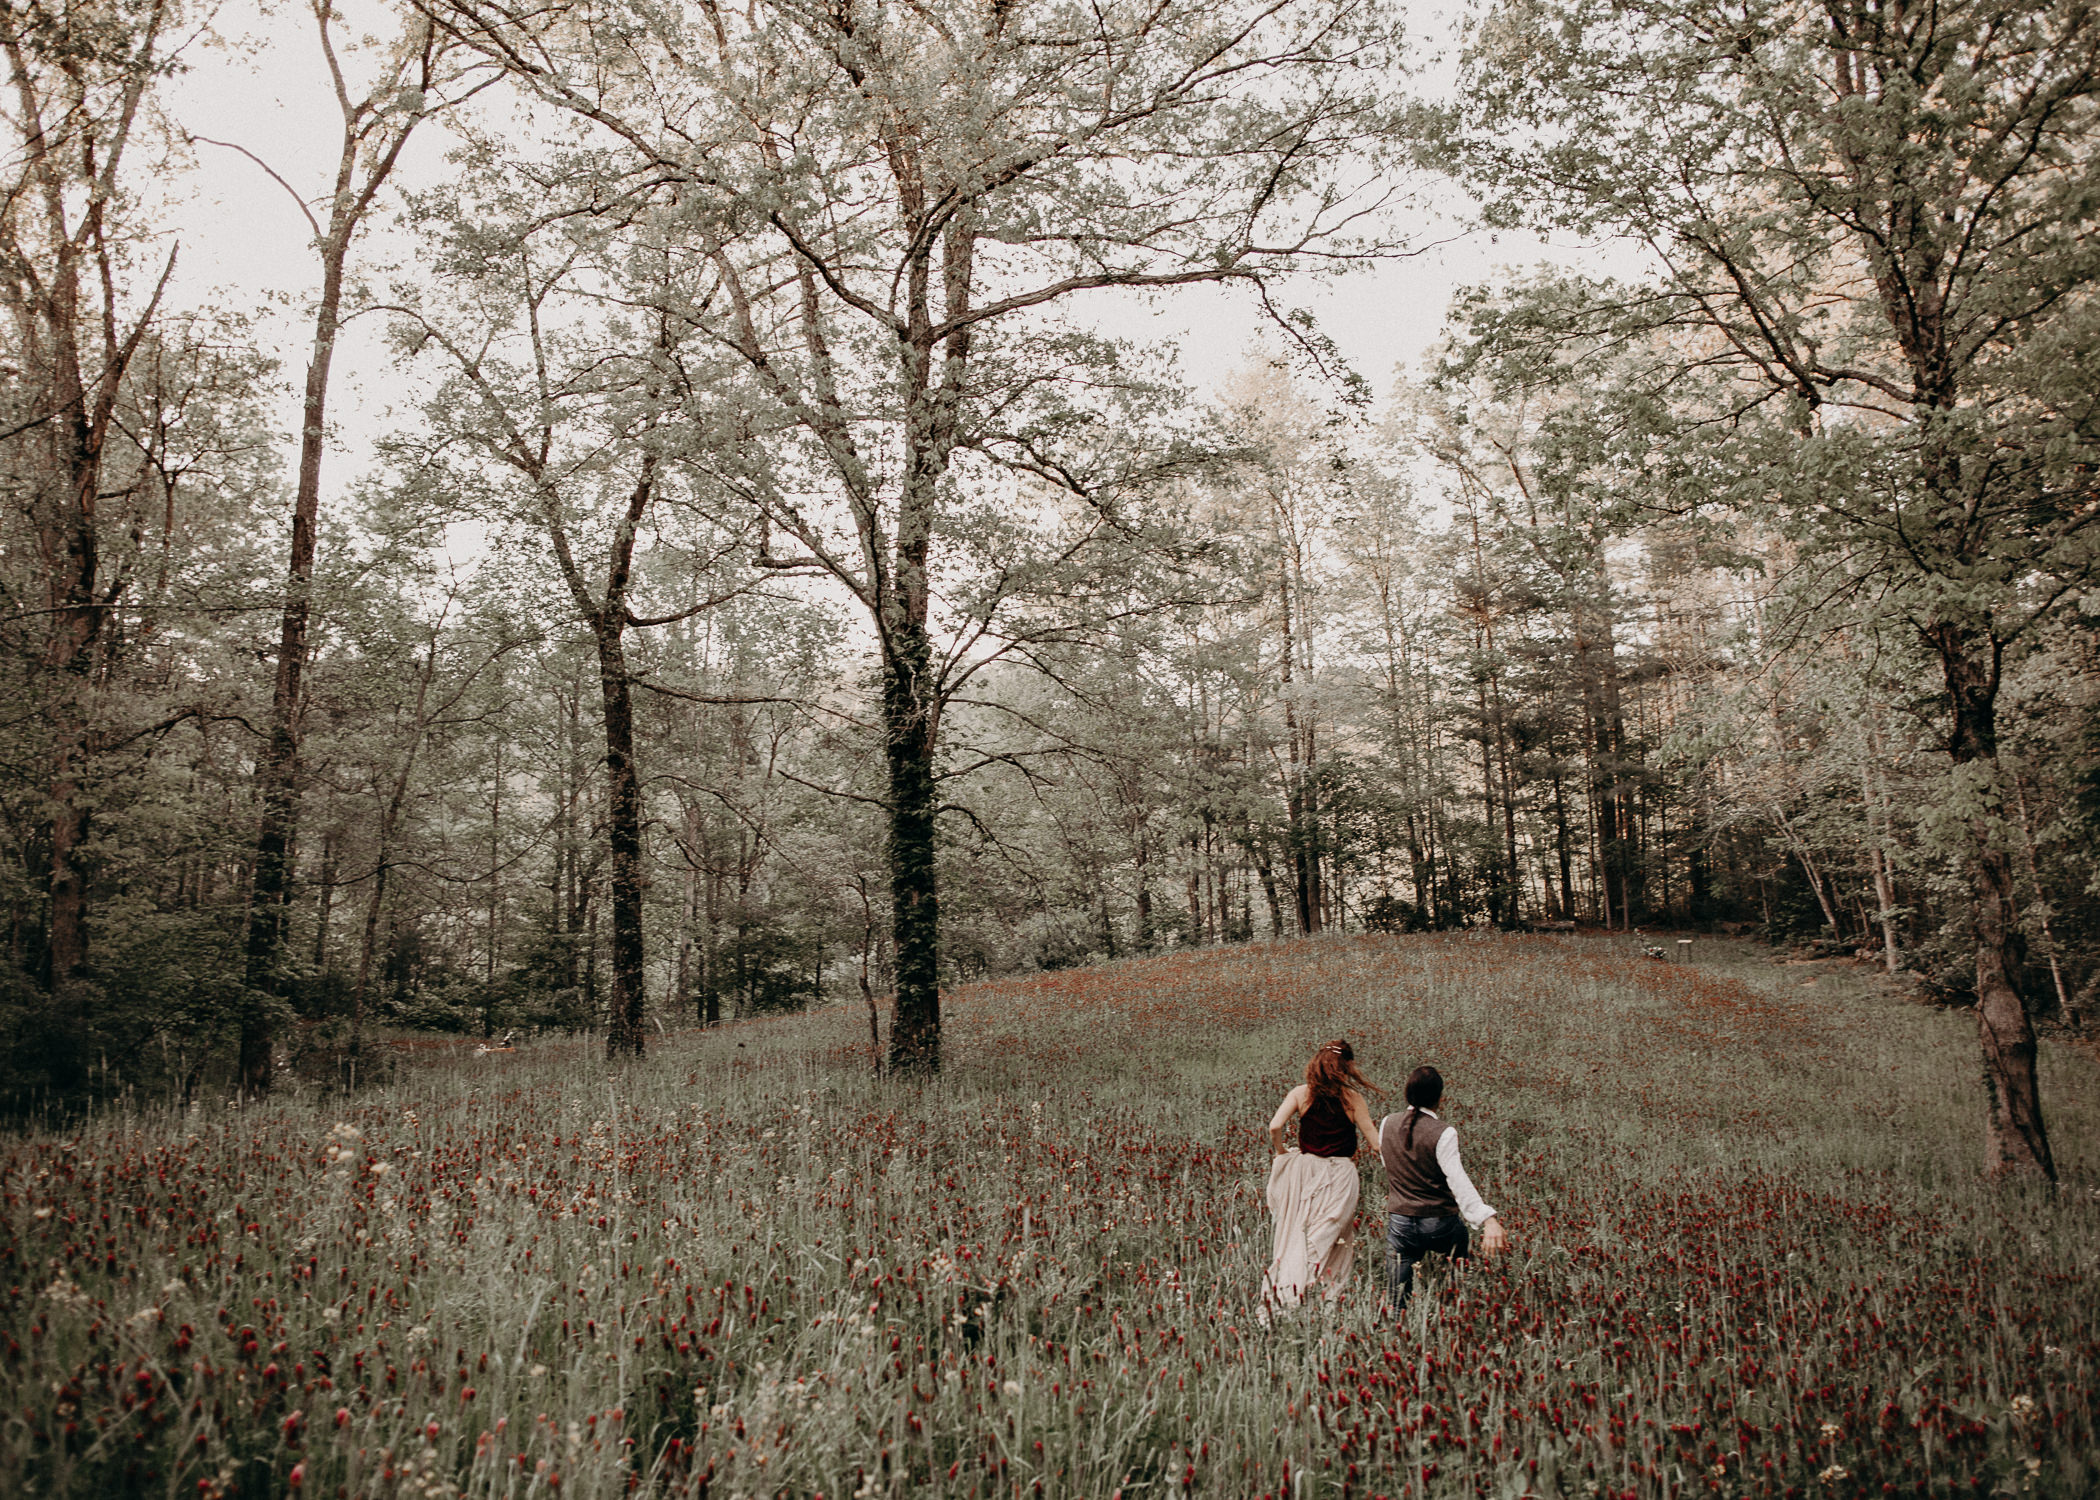 80- Forest wedding boho enchanched fairytale wedding atlanta - ga , intimate, elopement, nature, greens, good vibes. Aline Marin Photography .jpg